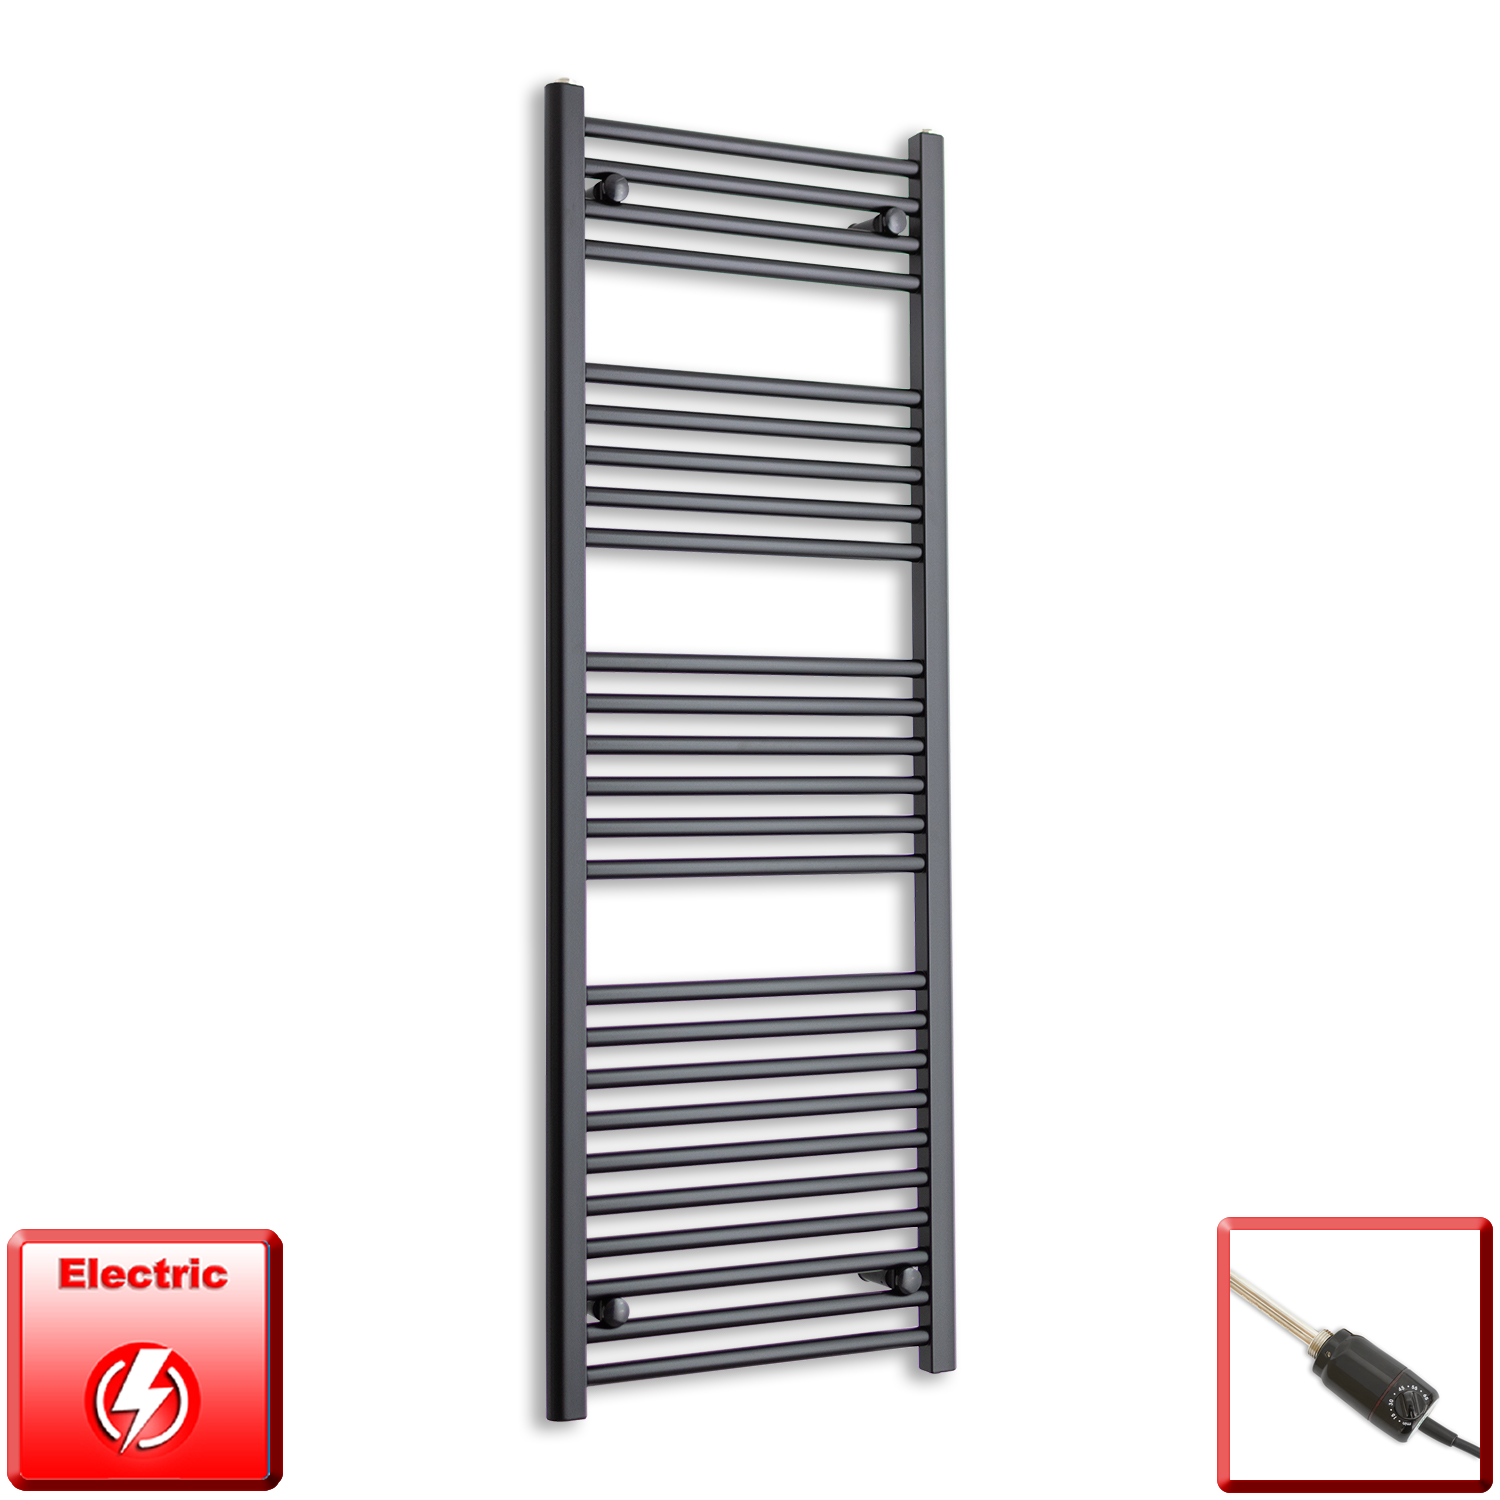 600mm Wide 1400mm High Flat Black Pre-Filled Electric Heated Towel Rail Radiator HTR,GT Thermostatic